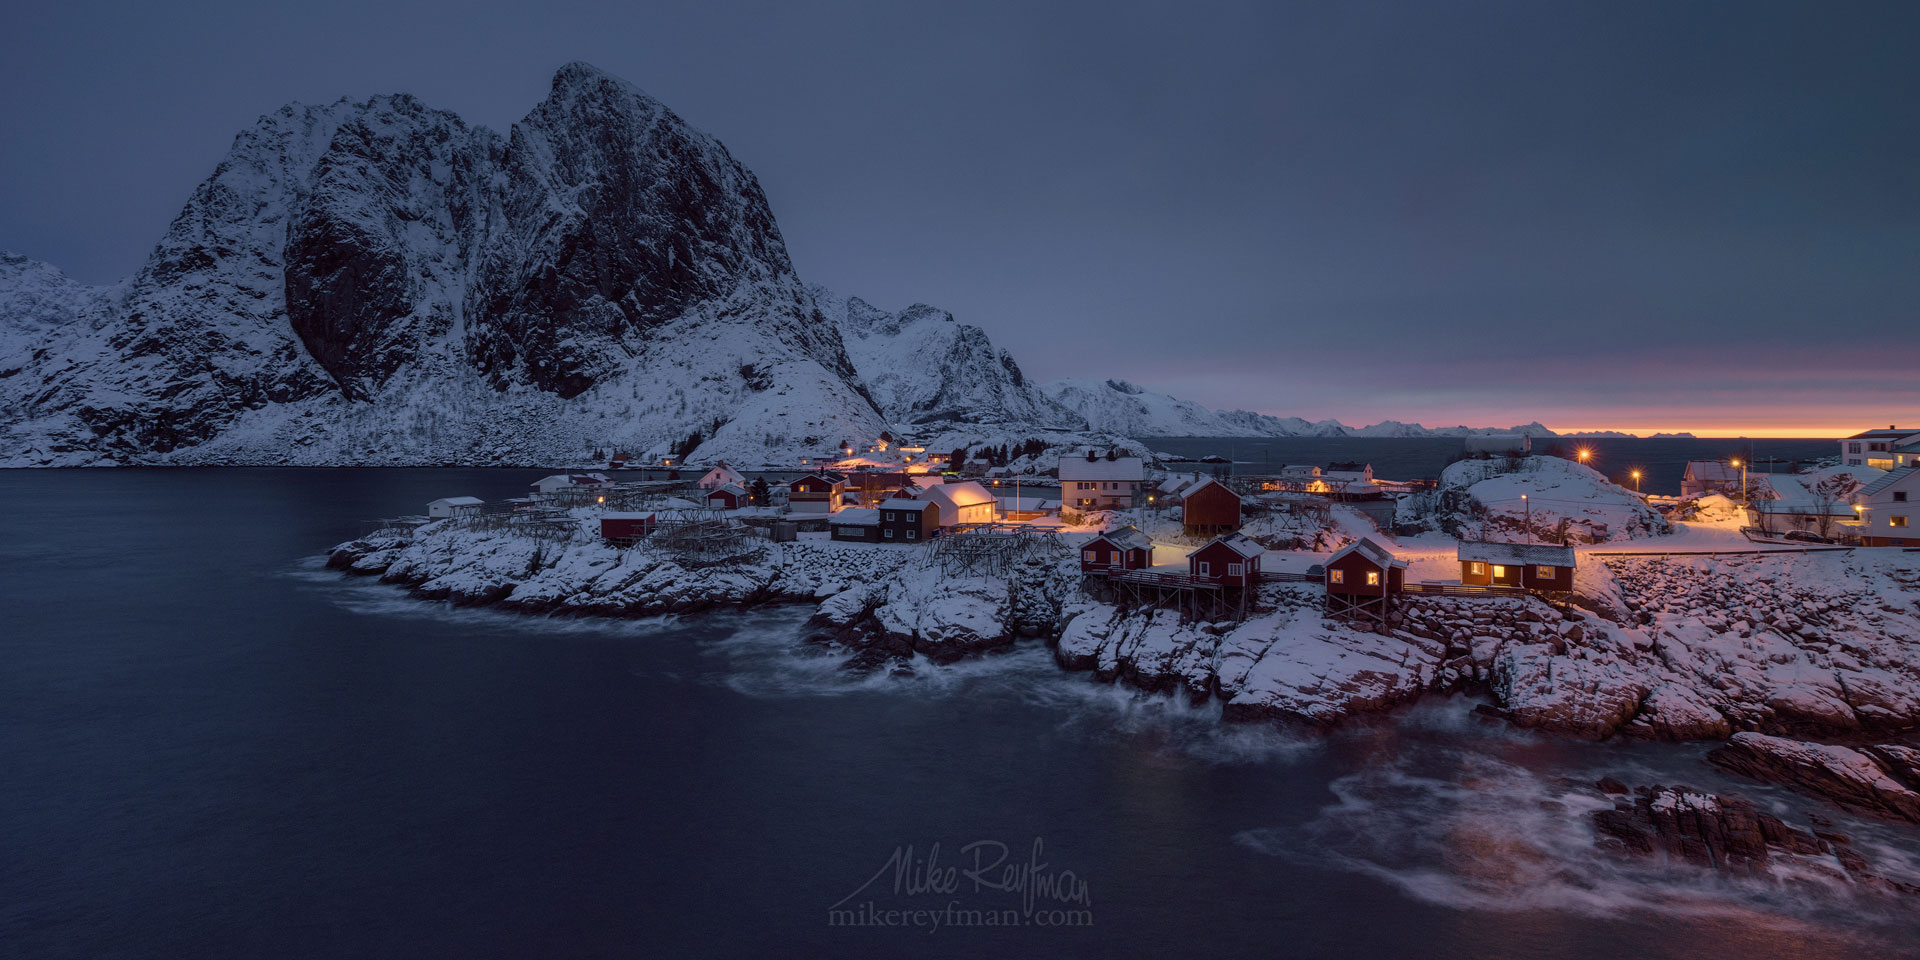 Fishing huts (rorbuer) of the Hamnoy with Lilandstinden mountain on the beckground. Moskenes, Lofoten archipelago, Norway. LF-MRD1E1851_Pano-2x1 - Lofoten Archipelago in Winter, Arctic Norway - Mike Reyfman Photography